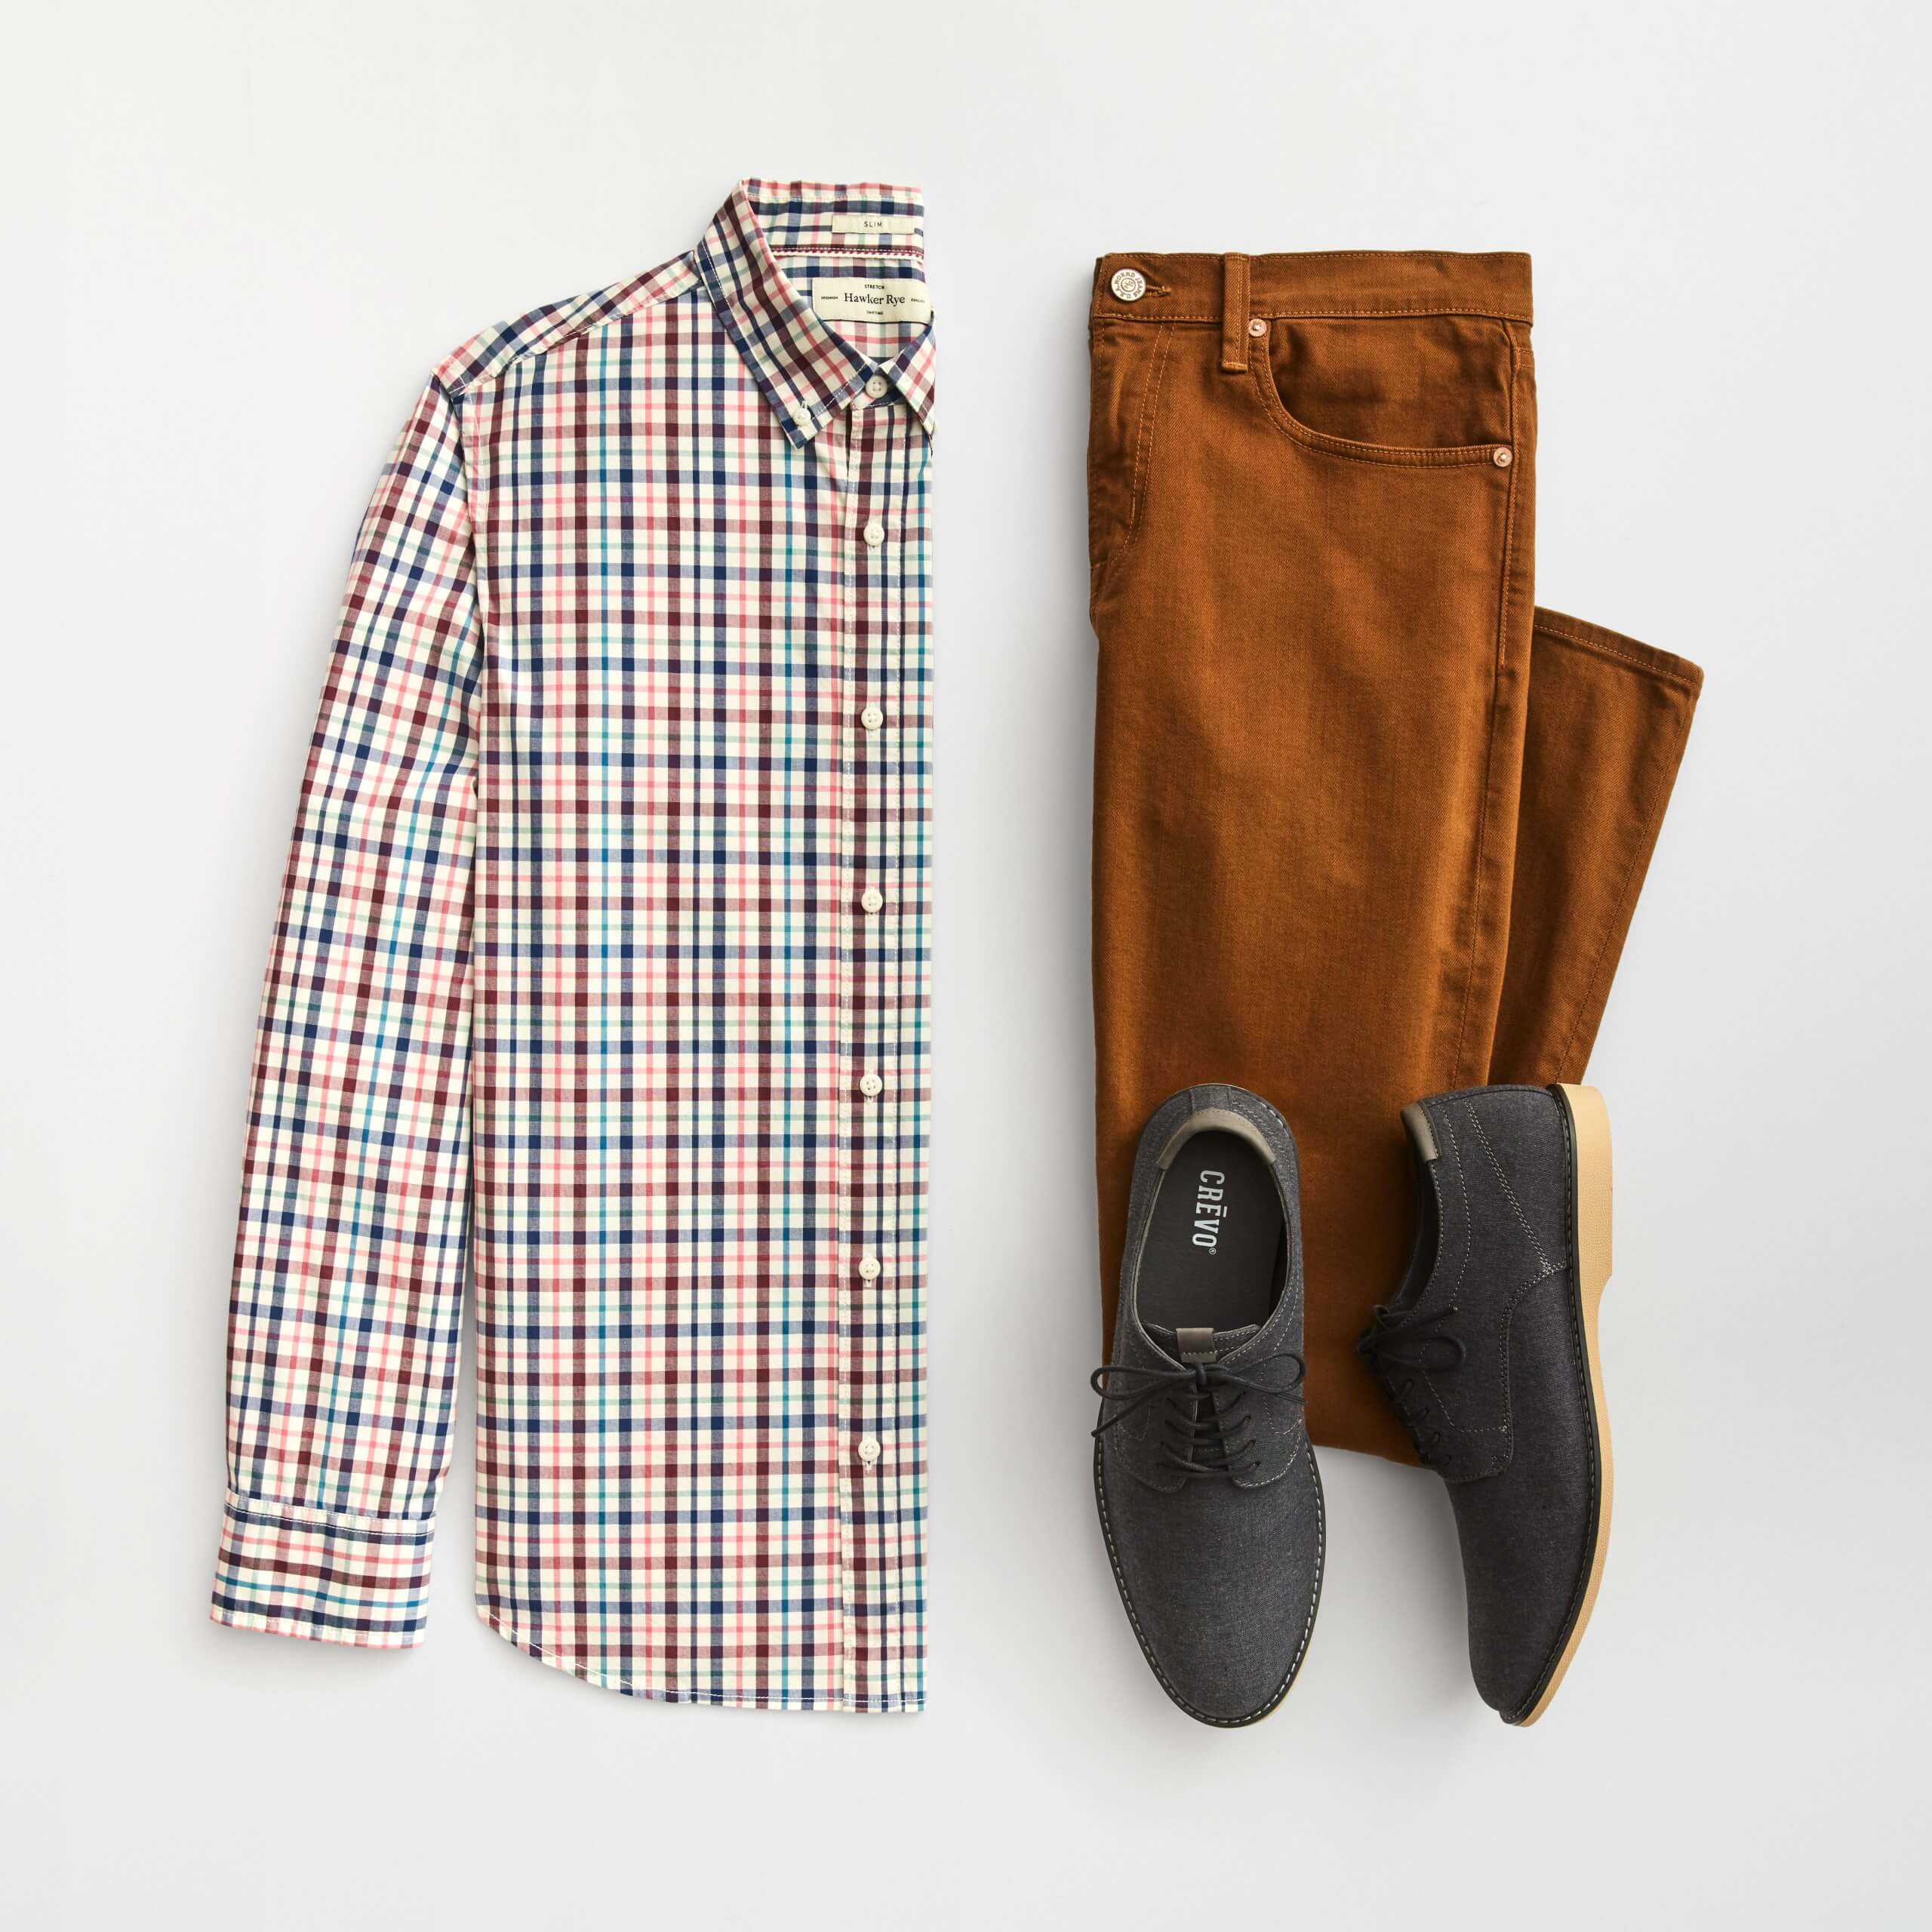 Stitch Fix Men's outfit laydown featuring multi-colored button-up shirt, brown colored skinny jeans and grey oxford shoes.